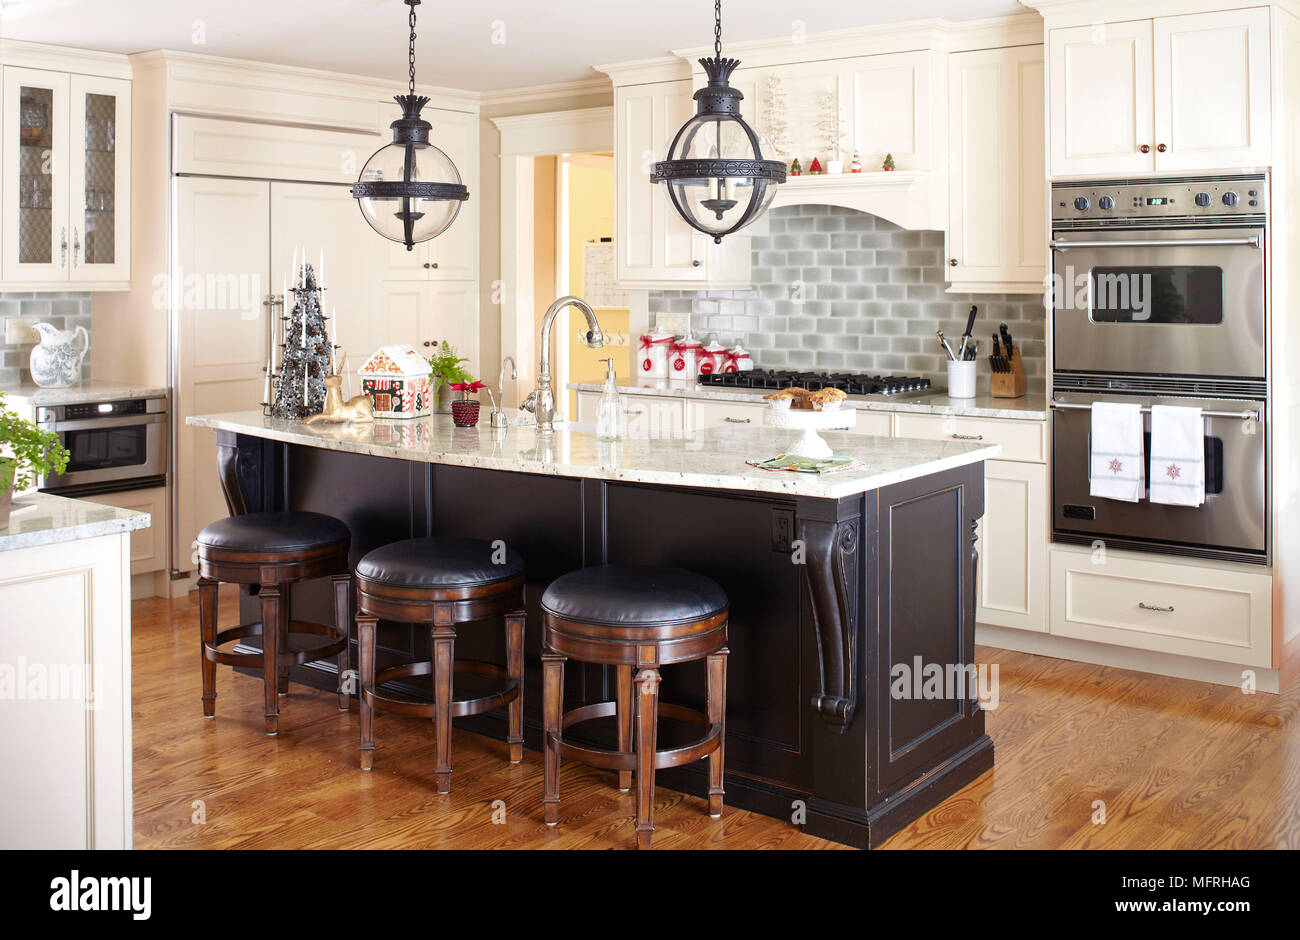 Stools Kitchen Islands Bar Stools At Kitchen Island Breakfast Bar In Traditional Style